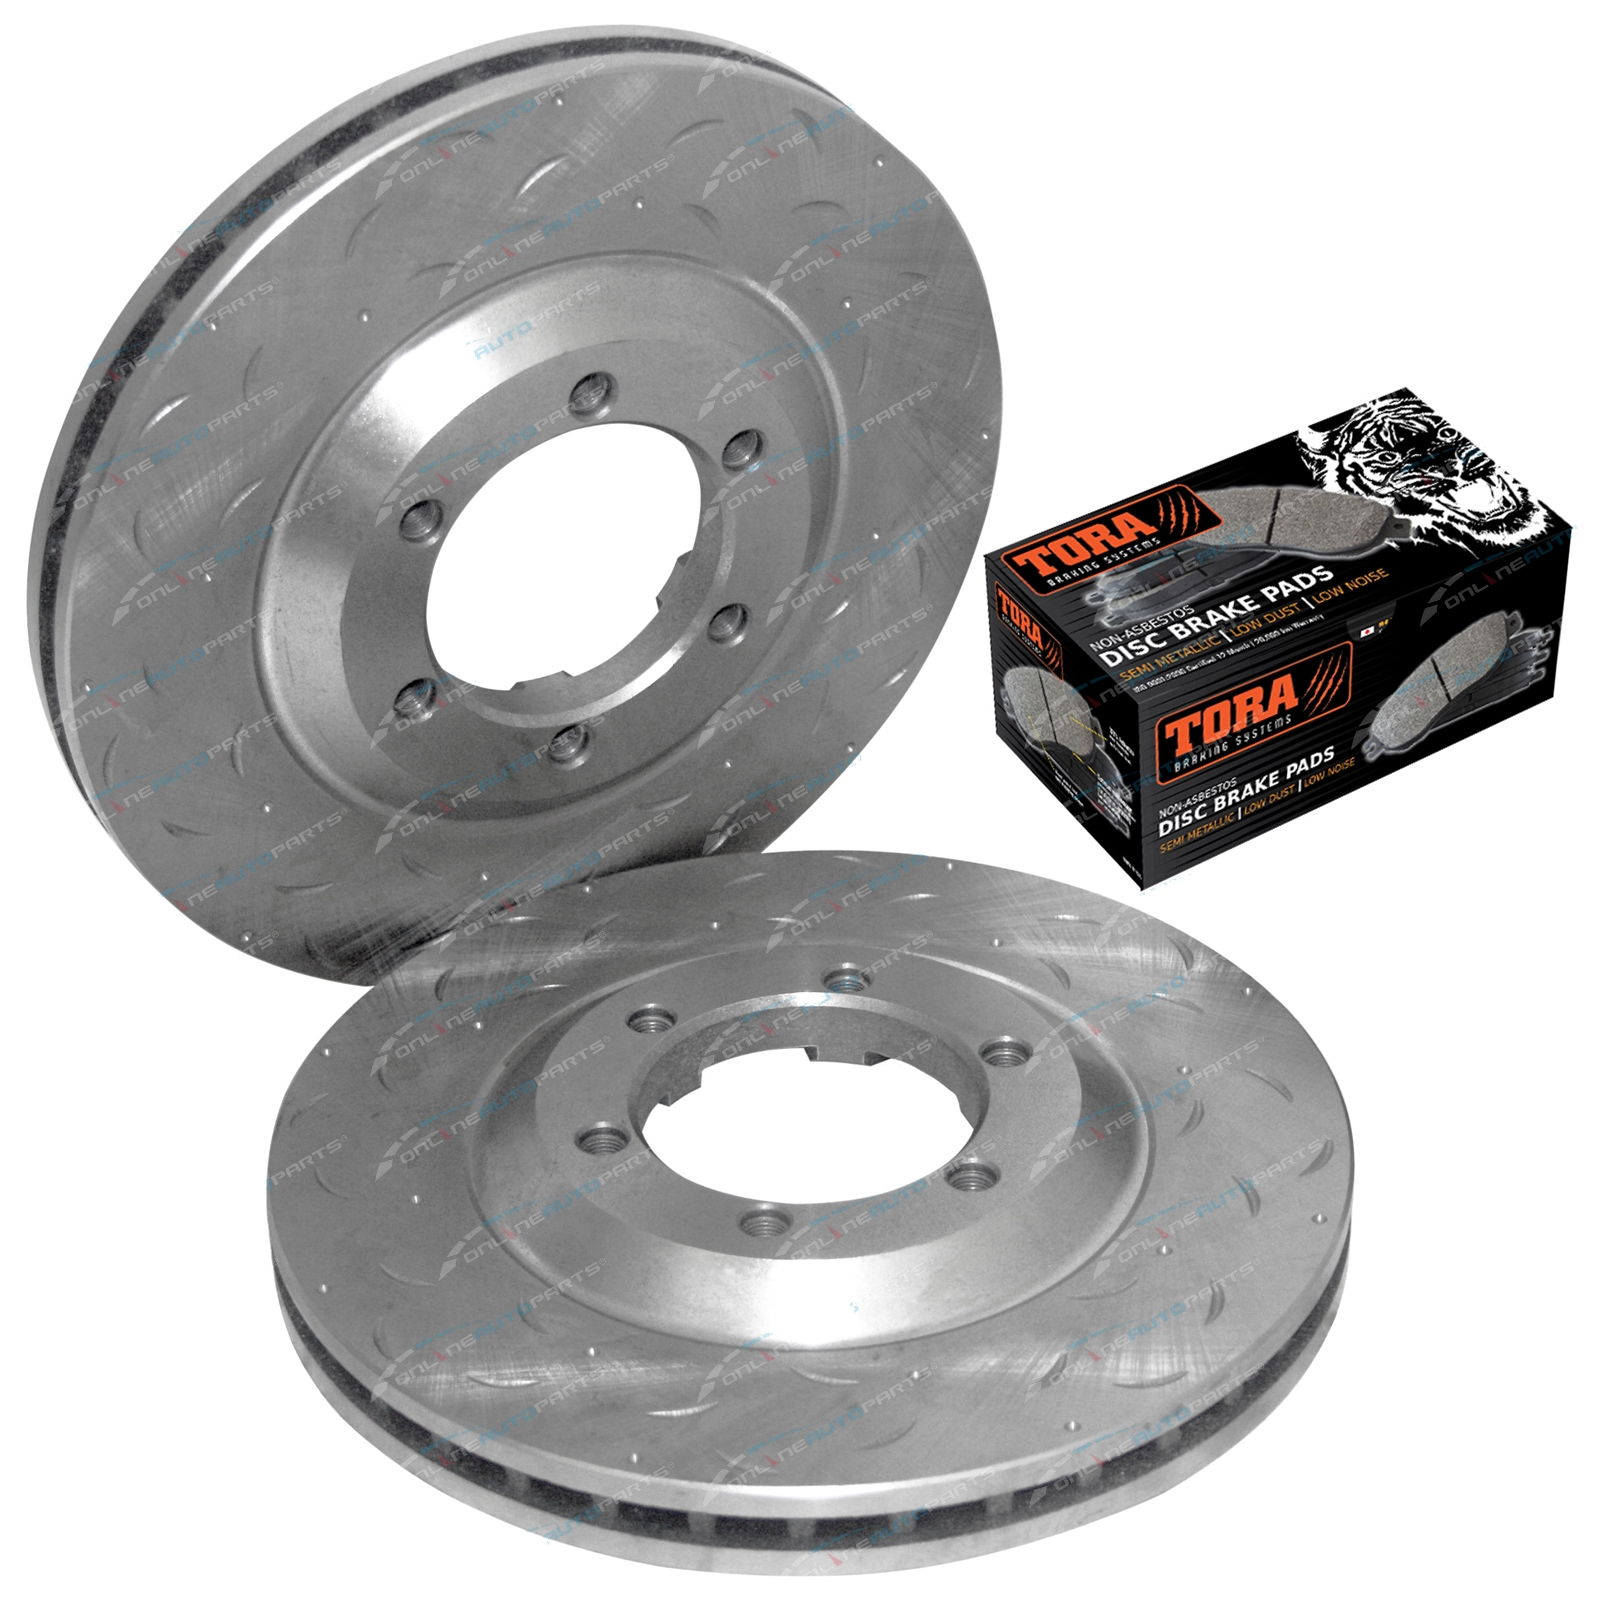 2 Front Disc Rotors + Brake Pads Holden Rodeo RA 2003-2008 4X4 Ute